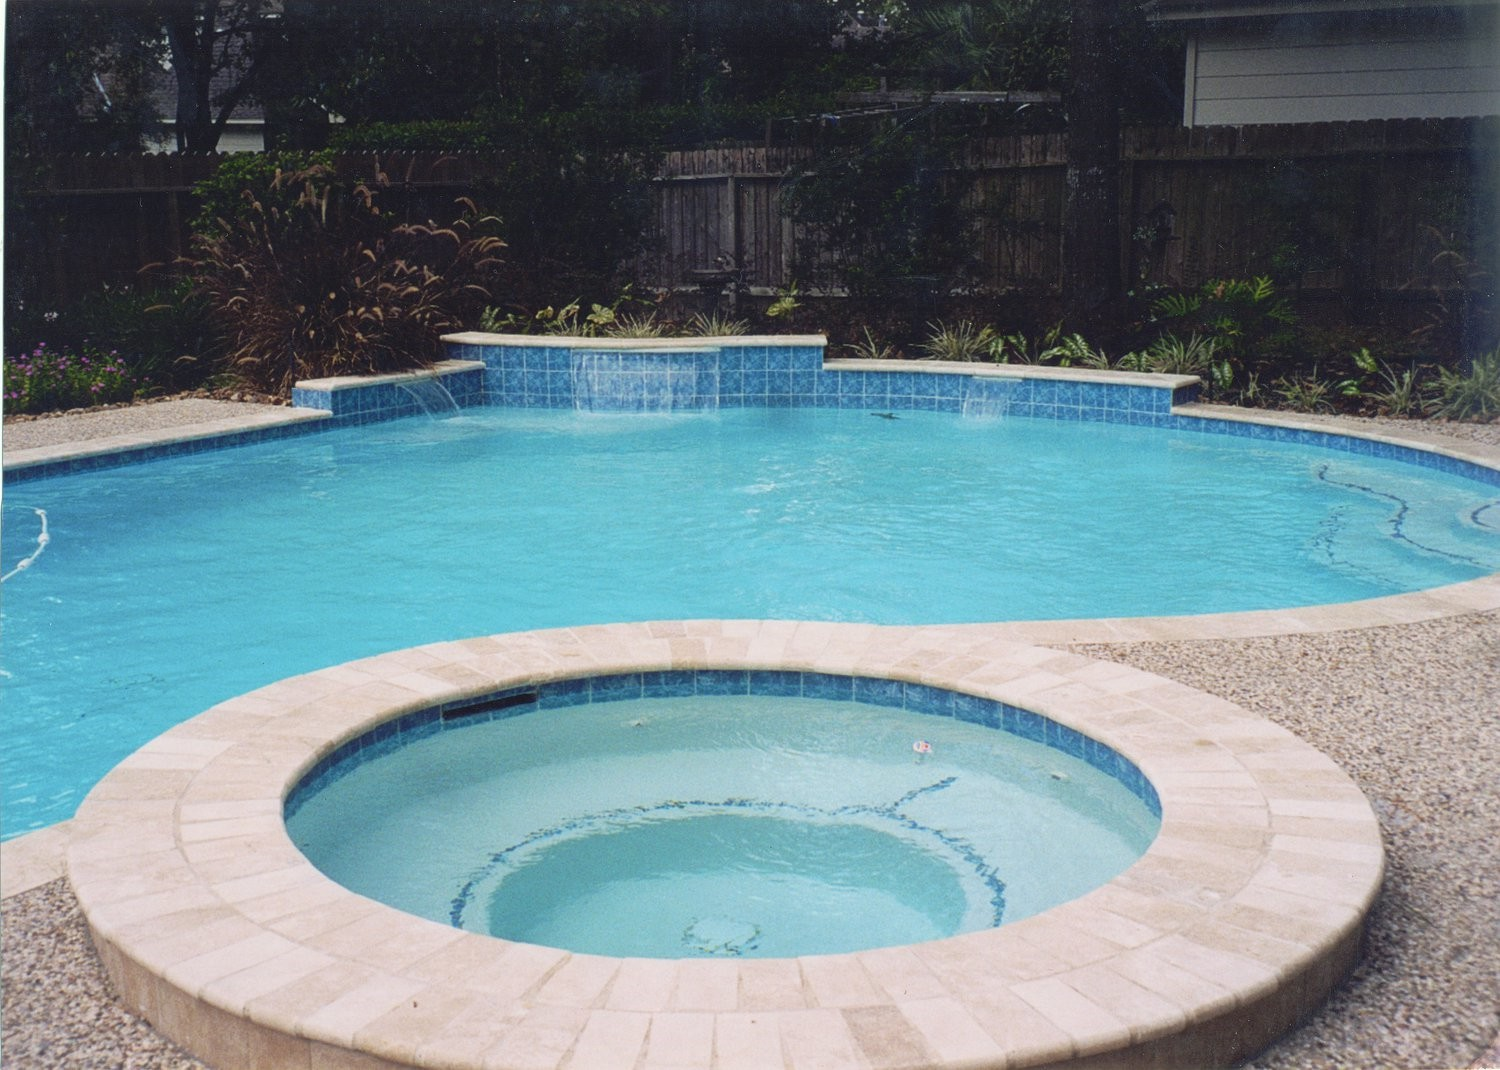 Pool Designs Cypress Spring Tomball Katy Houston